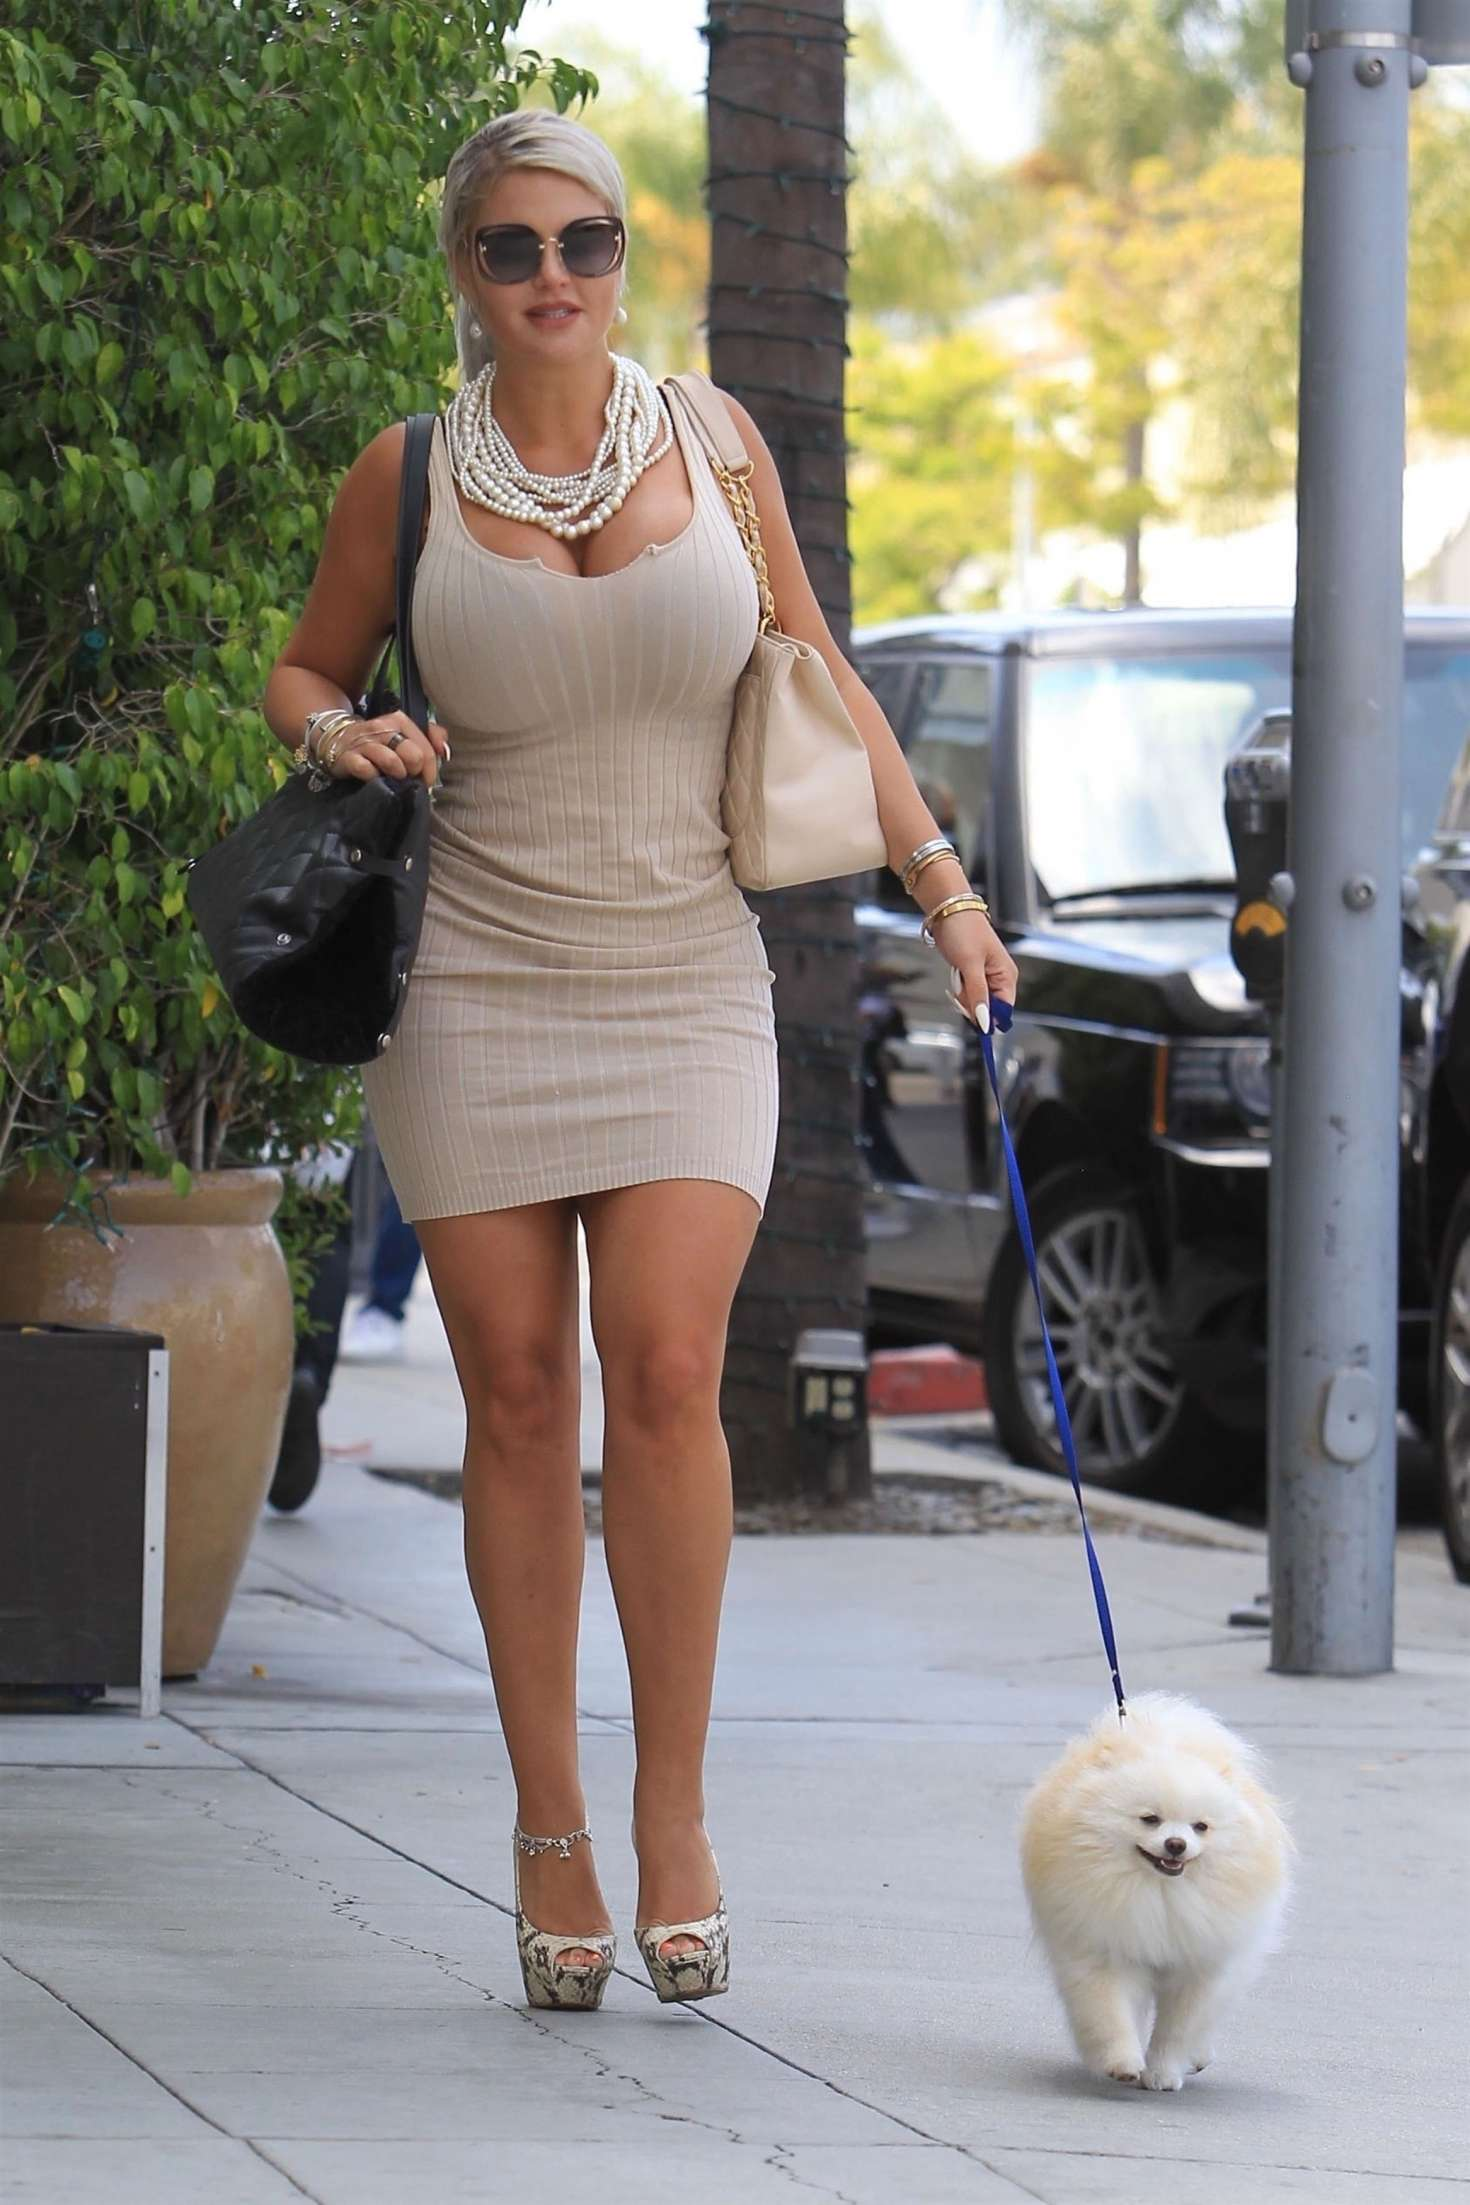 Sophia Vegas Wollersheim - Heading to lunch in Beverly Hills